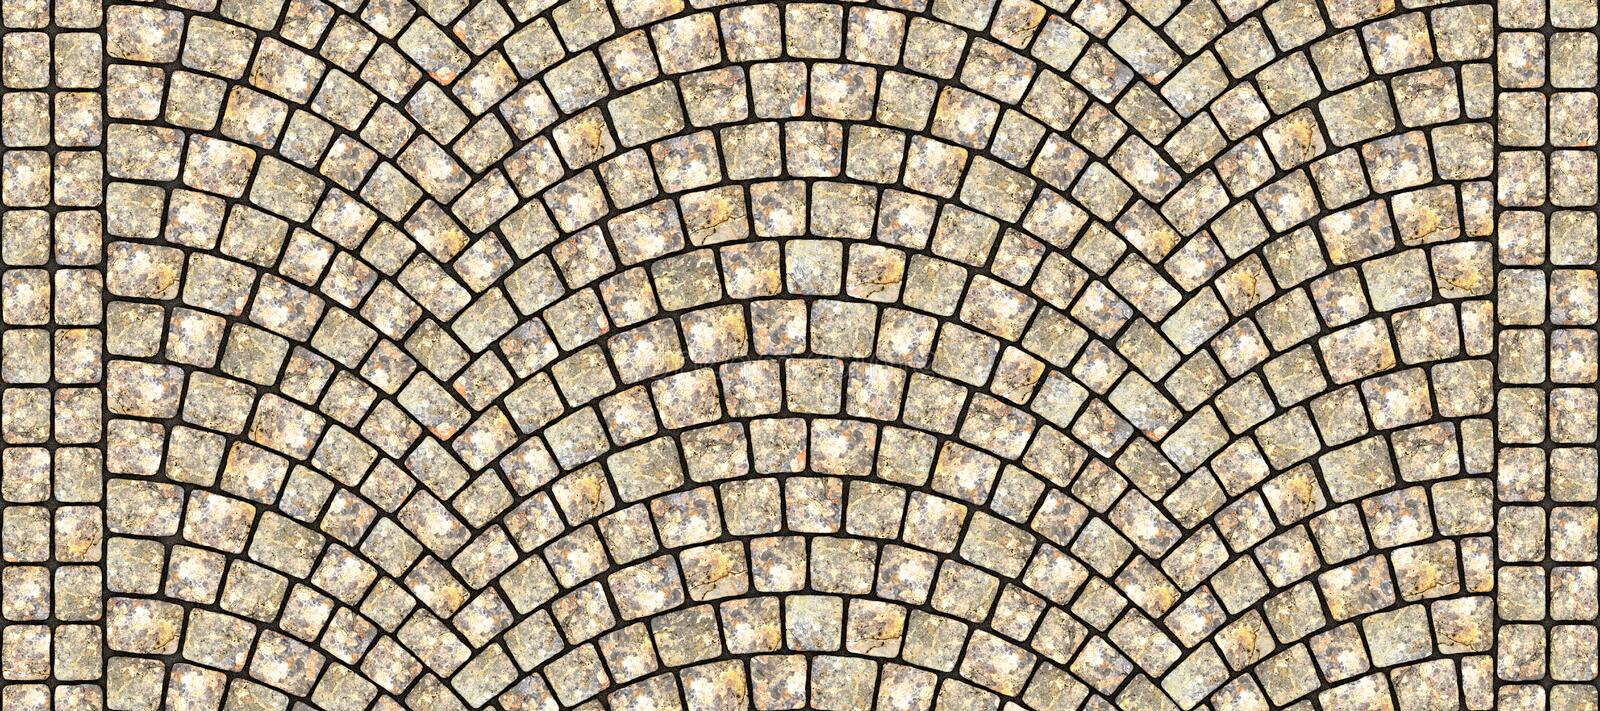 Road curved cobblestone texture 114. Cobblestone arched pavement road with edge courses at the sidewalk. Seamless tileable repeating 3D rendering texture royalty free illustration